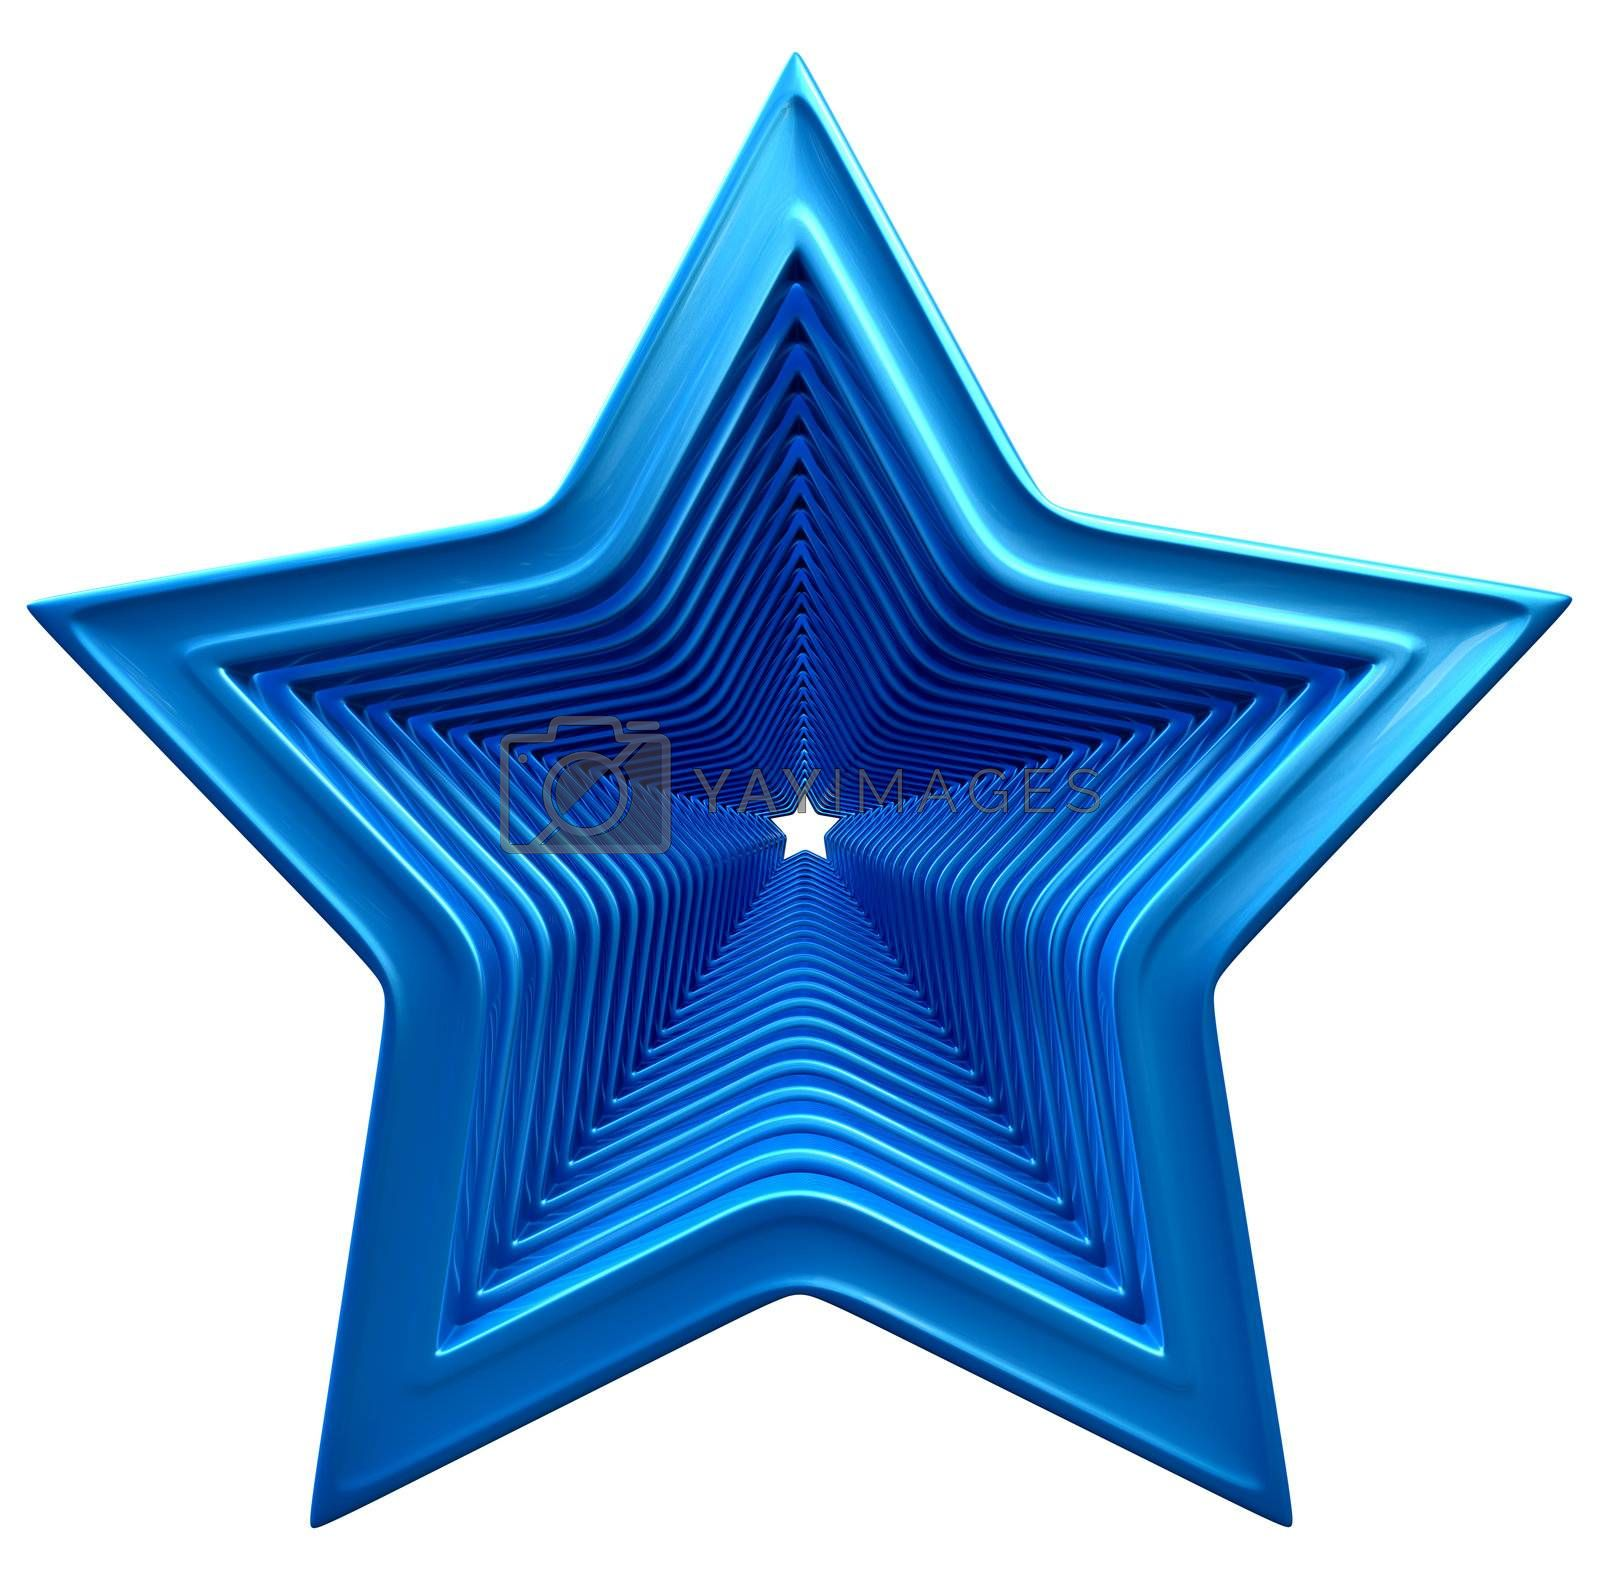 big and small stars in motion for advertise on white background